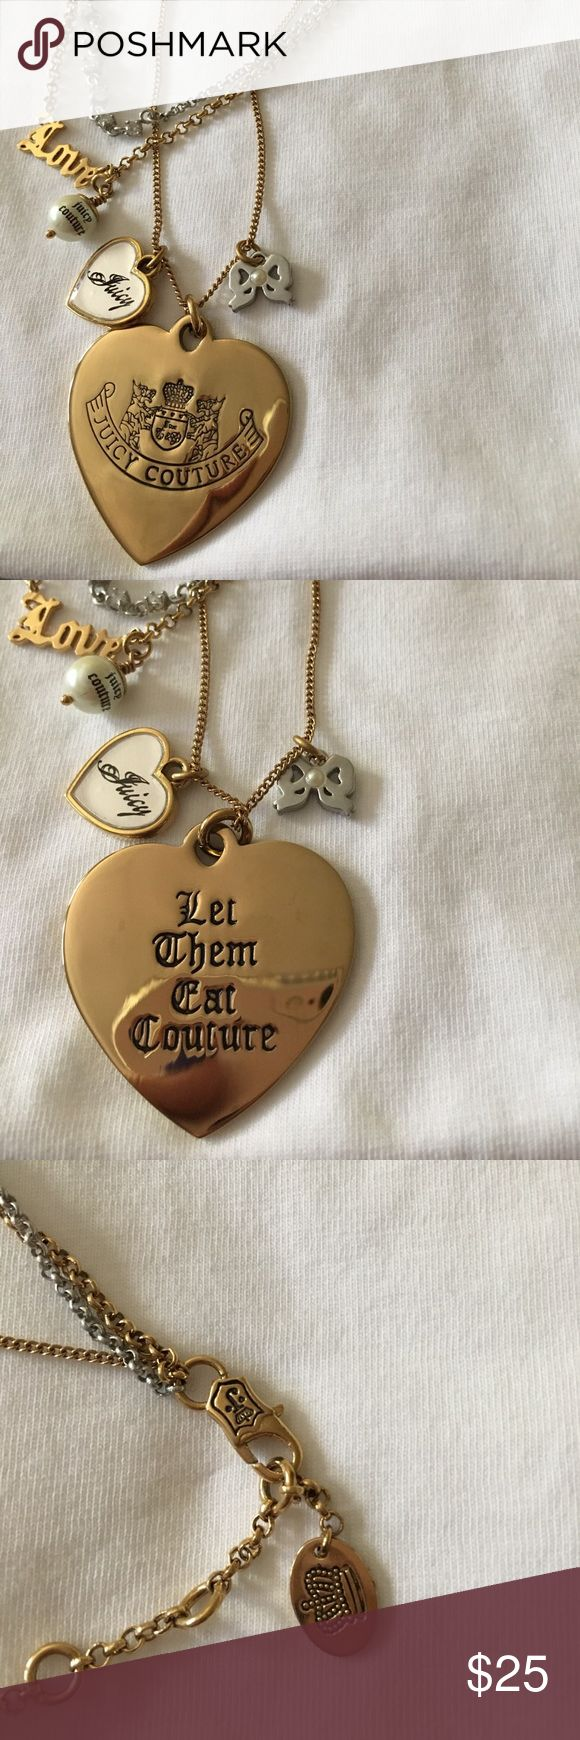 Juicy Couture let them eat couture necklace Juicy Couture charm necklace. Gold/silver details. Barely worn Juicy Couture Jewelry Necklaces